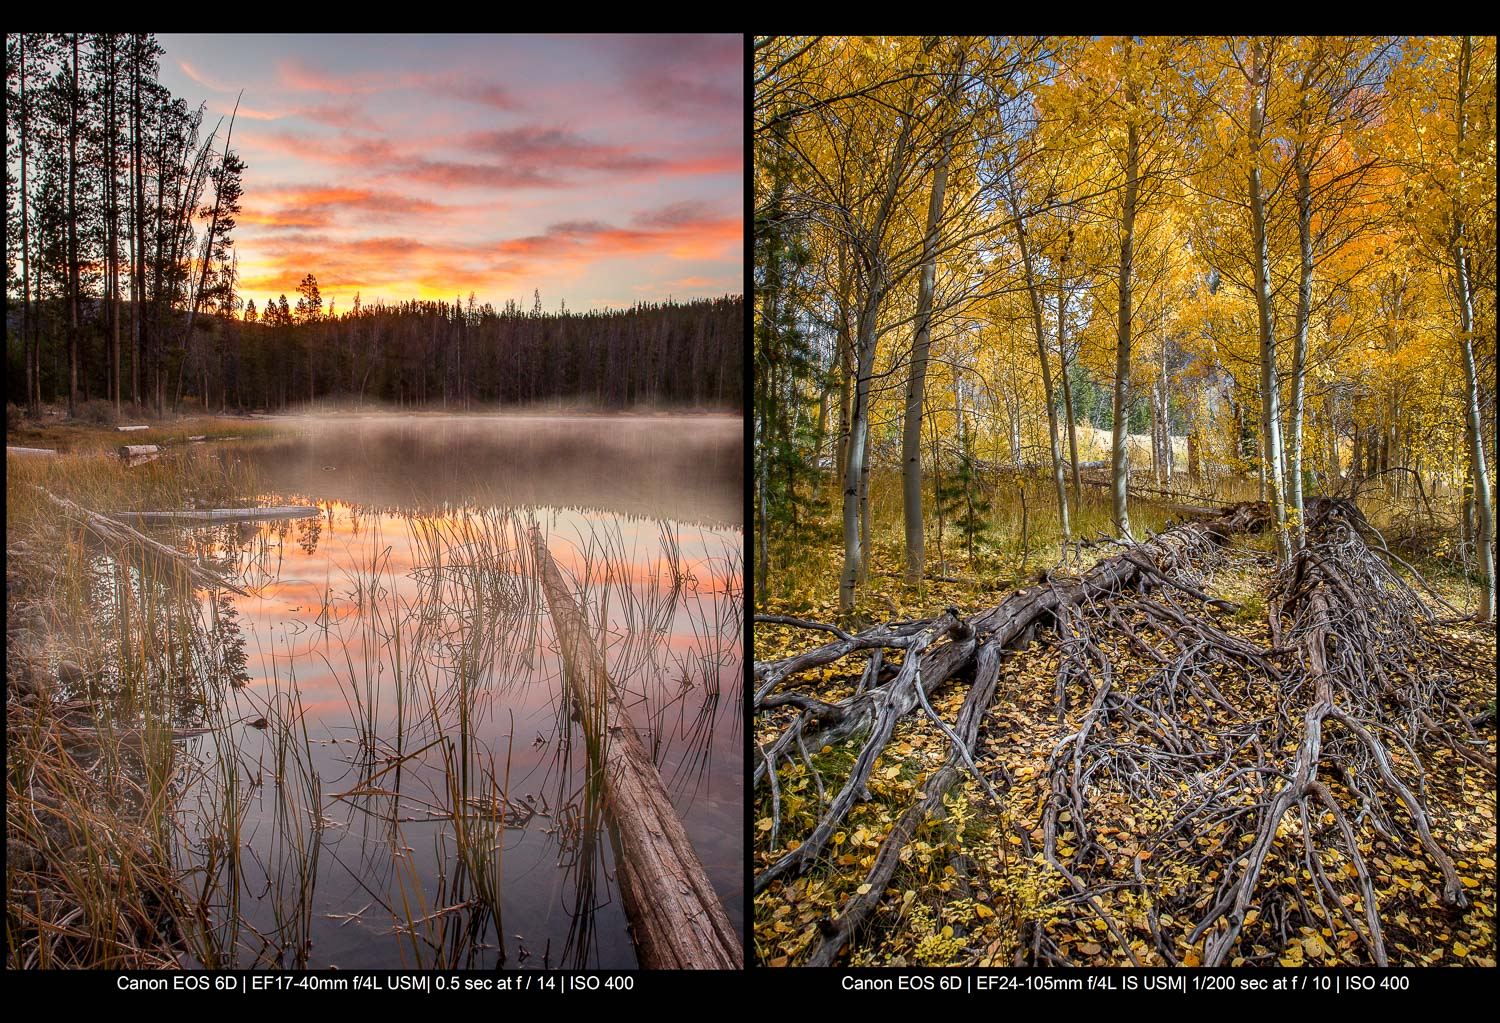 predawn misty lake (left) and an aspen grove in fall (right)